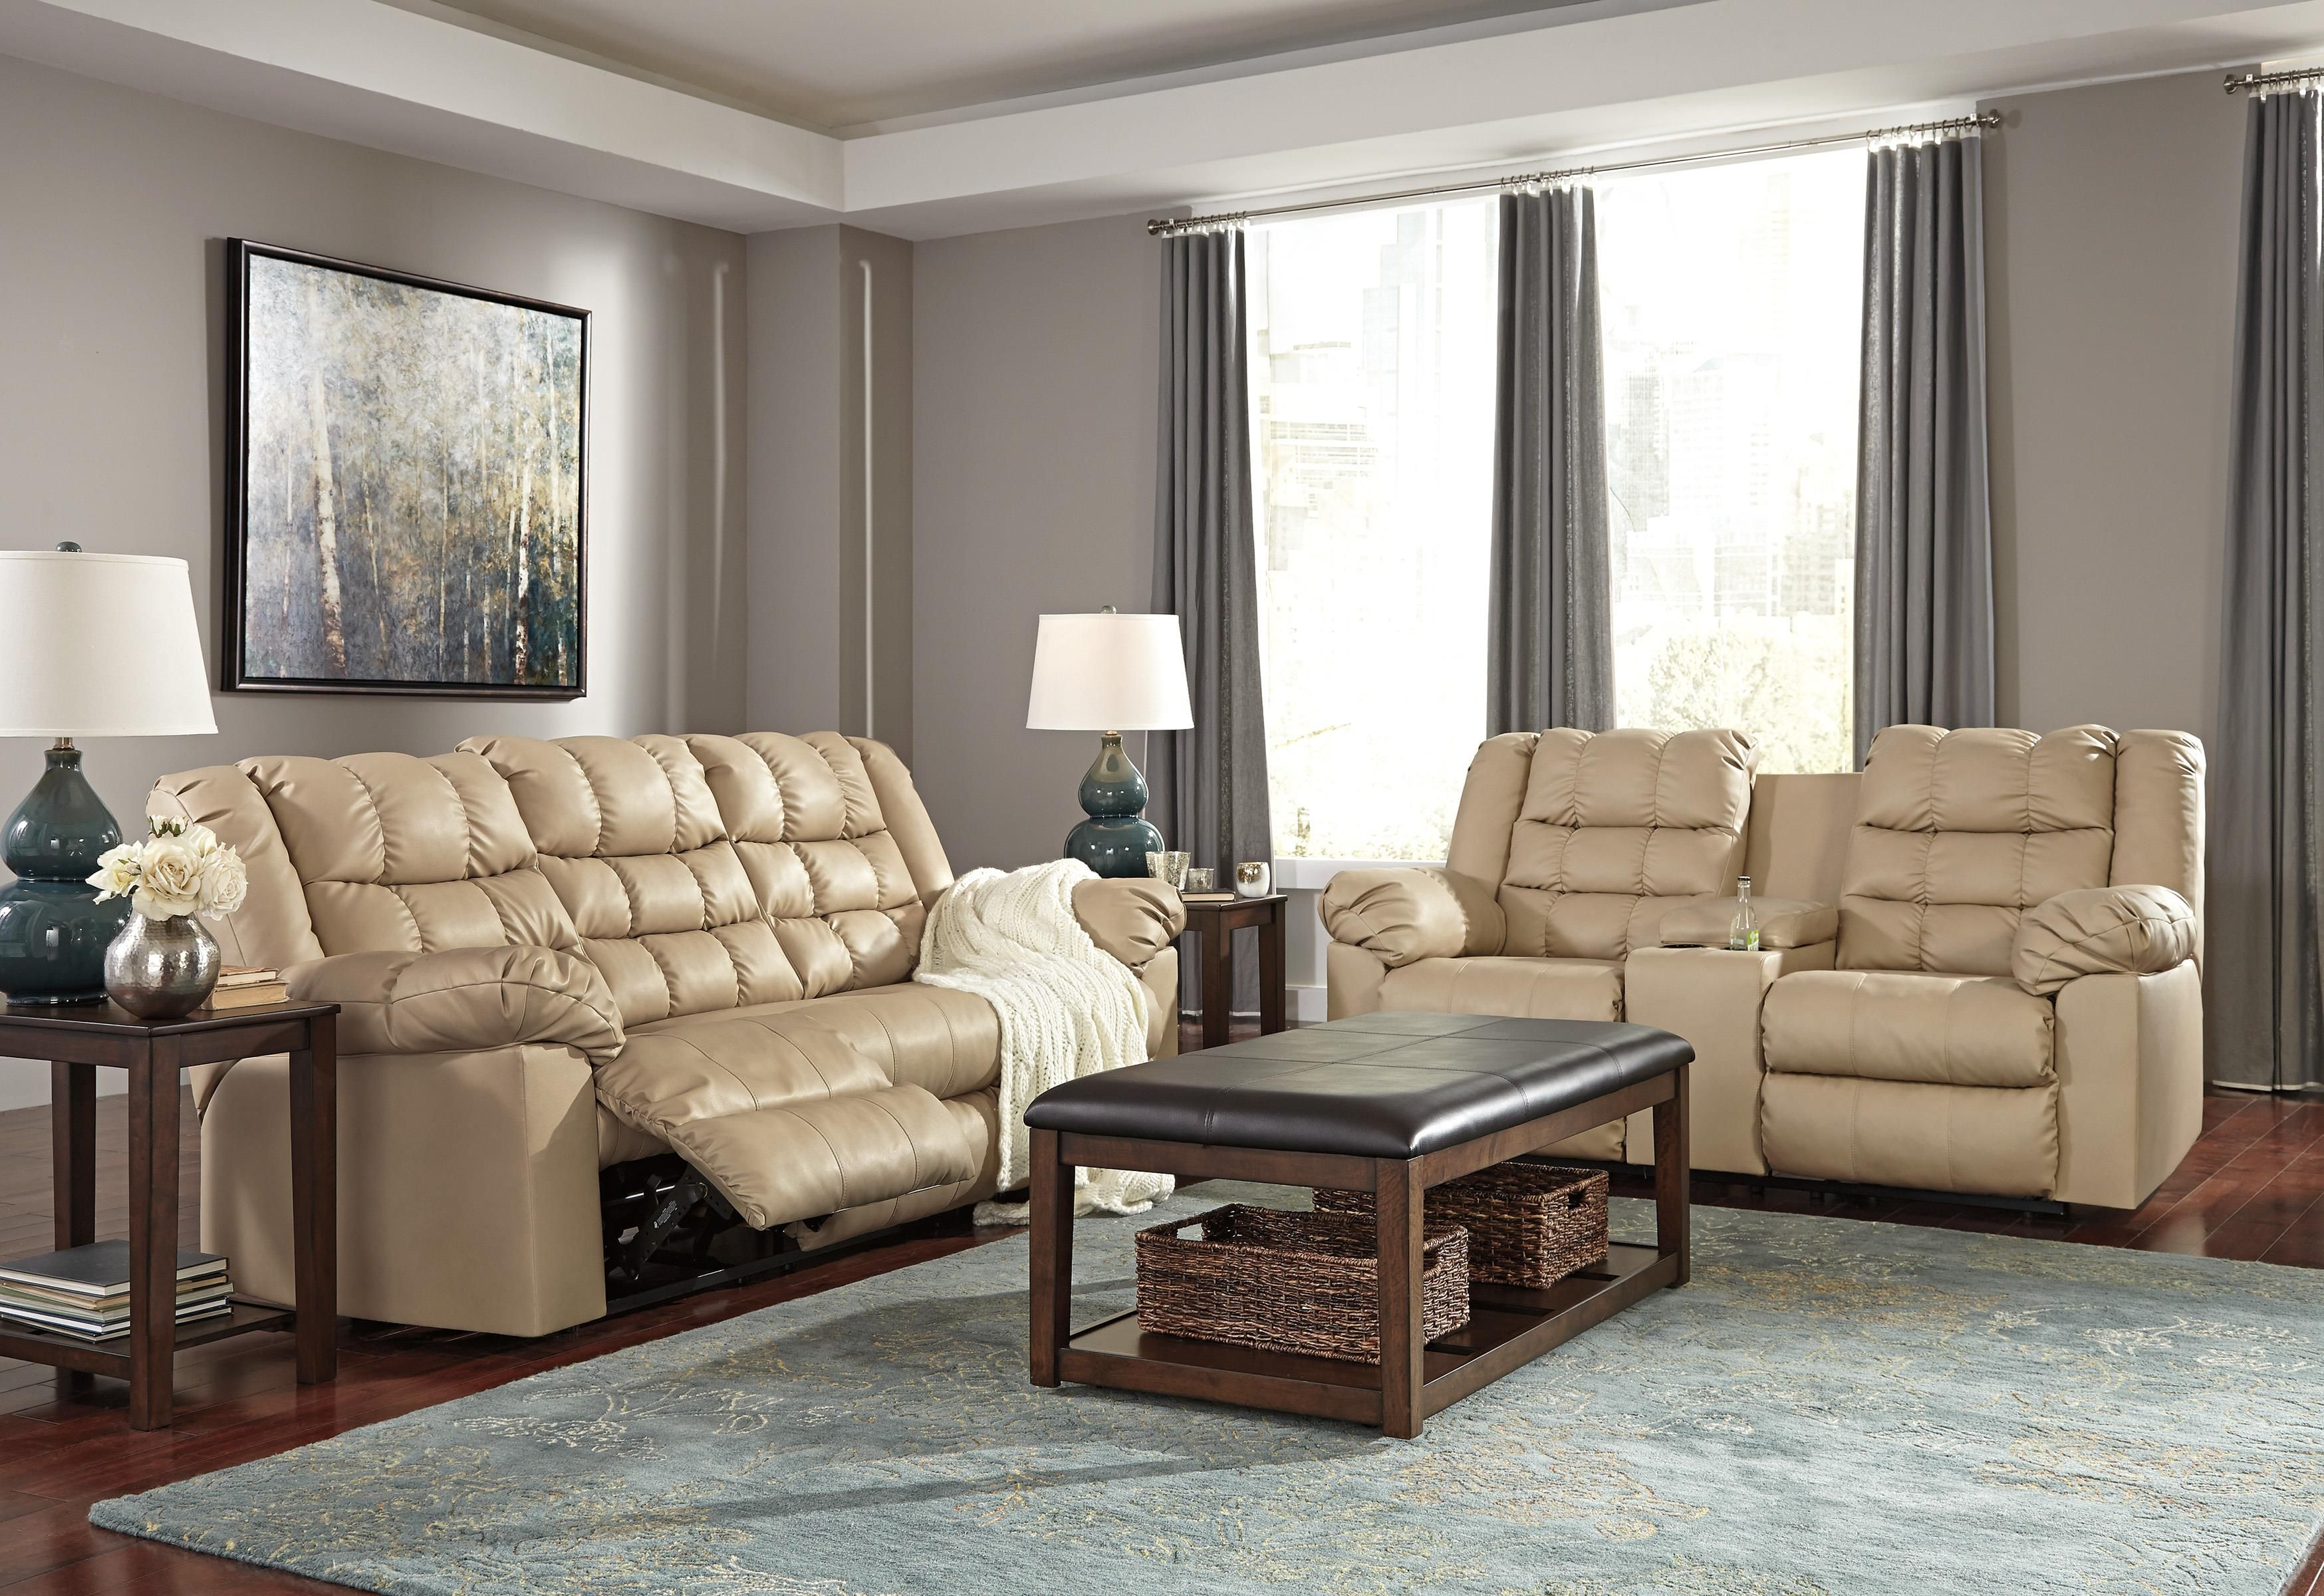 Merveilleux Discover A World Of Comfort And Style With The Brolayne In Beige! All  American Furniture, Lakeland, FL